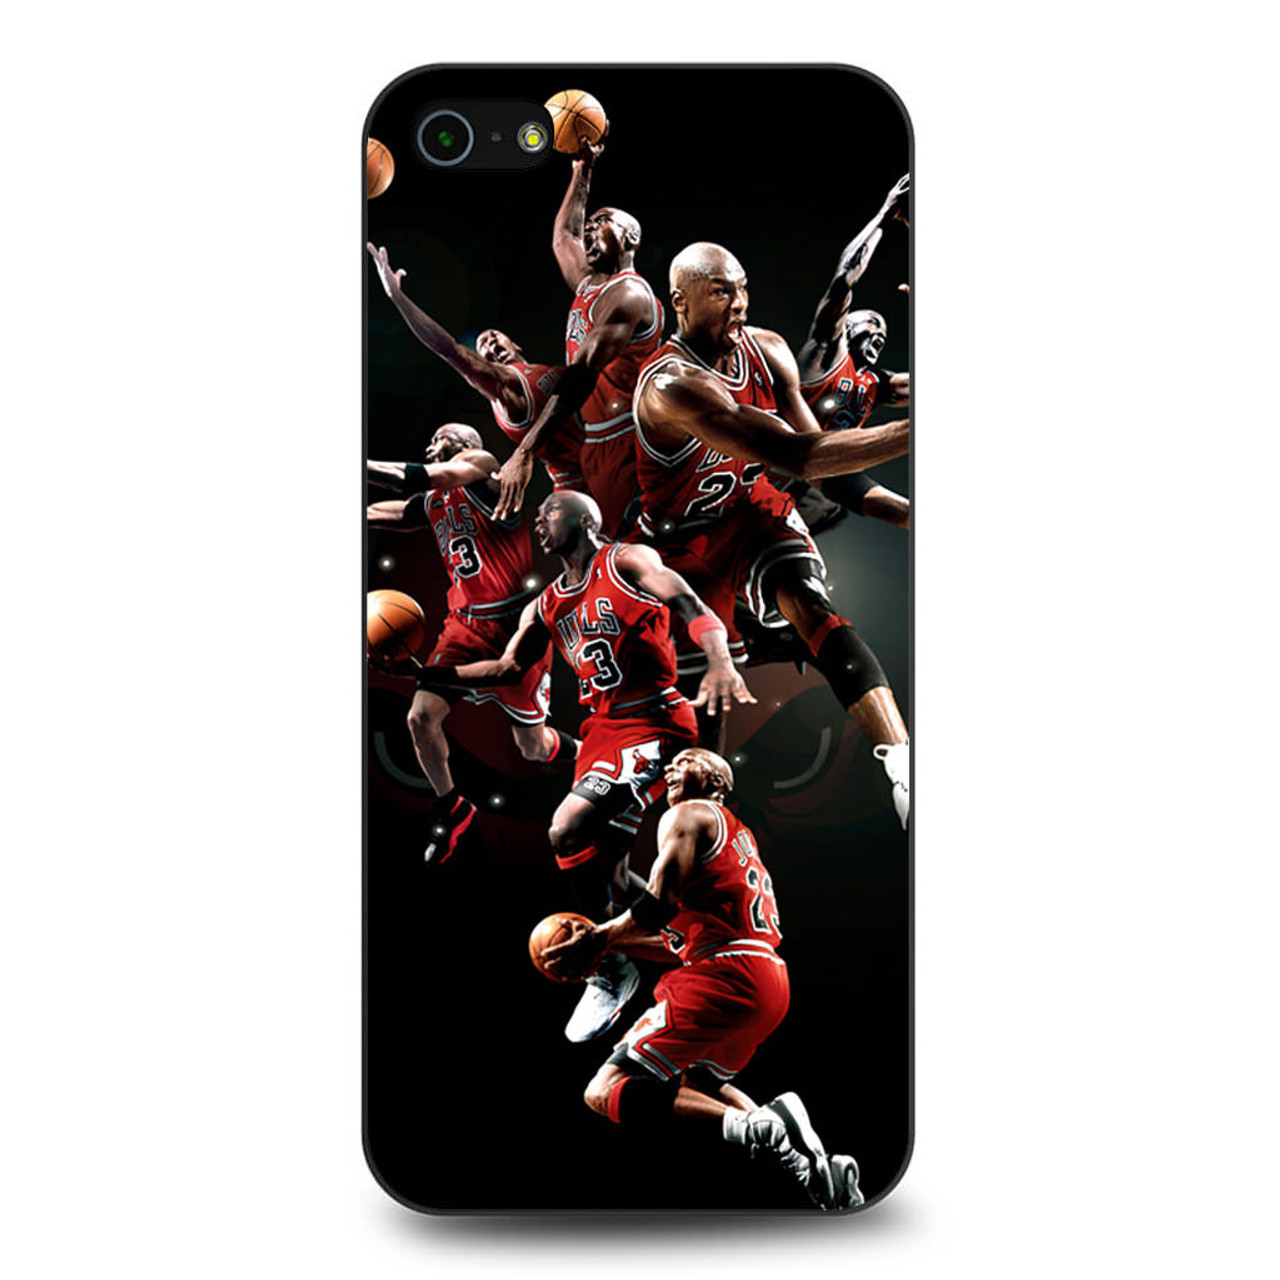 quality design 1985a 32459 Michael Jordan iPhone 5/5S/SE Case